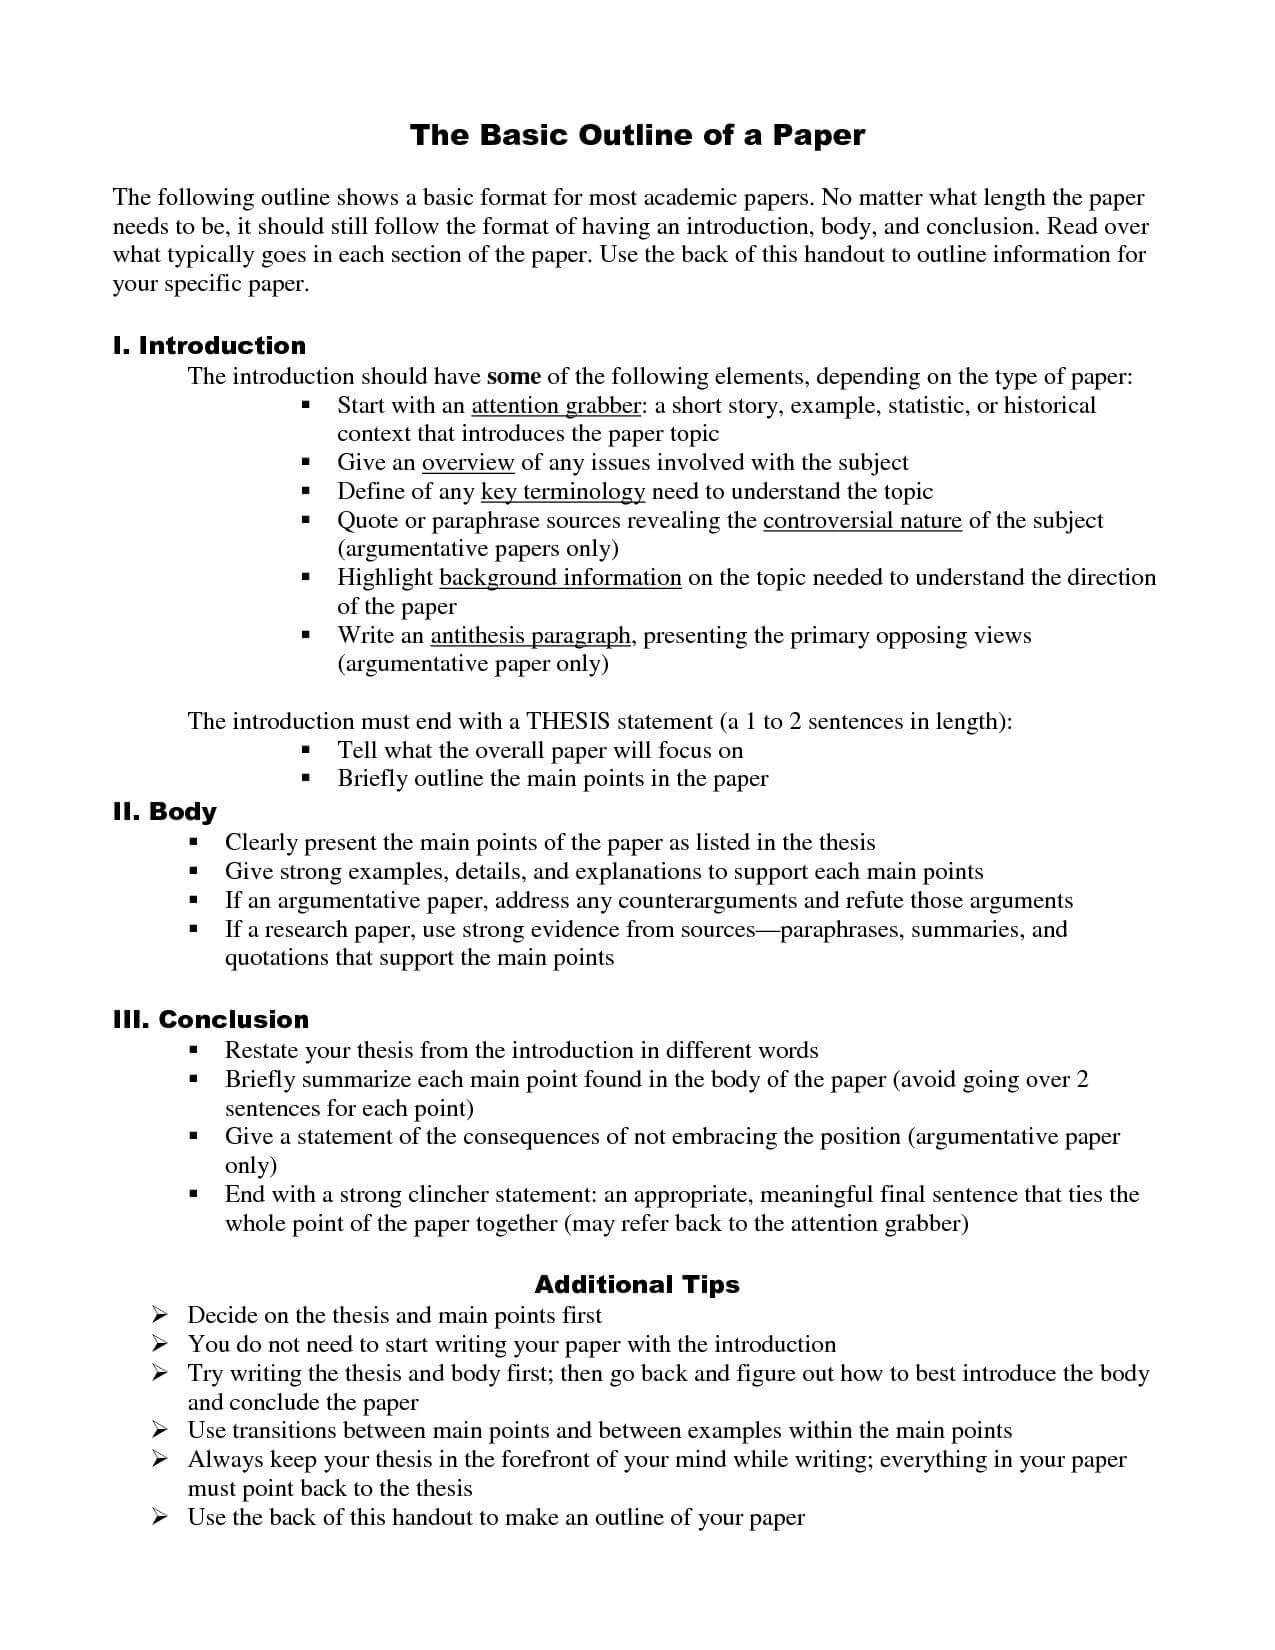 022 Introduction Of Research Paper Sample Apa Outline Free For Apa Research Paper Template Word 2010